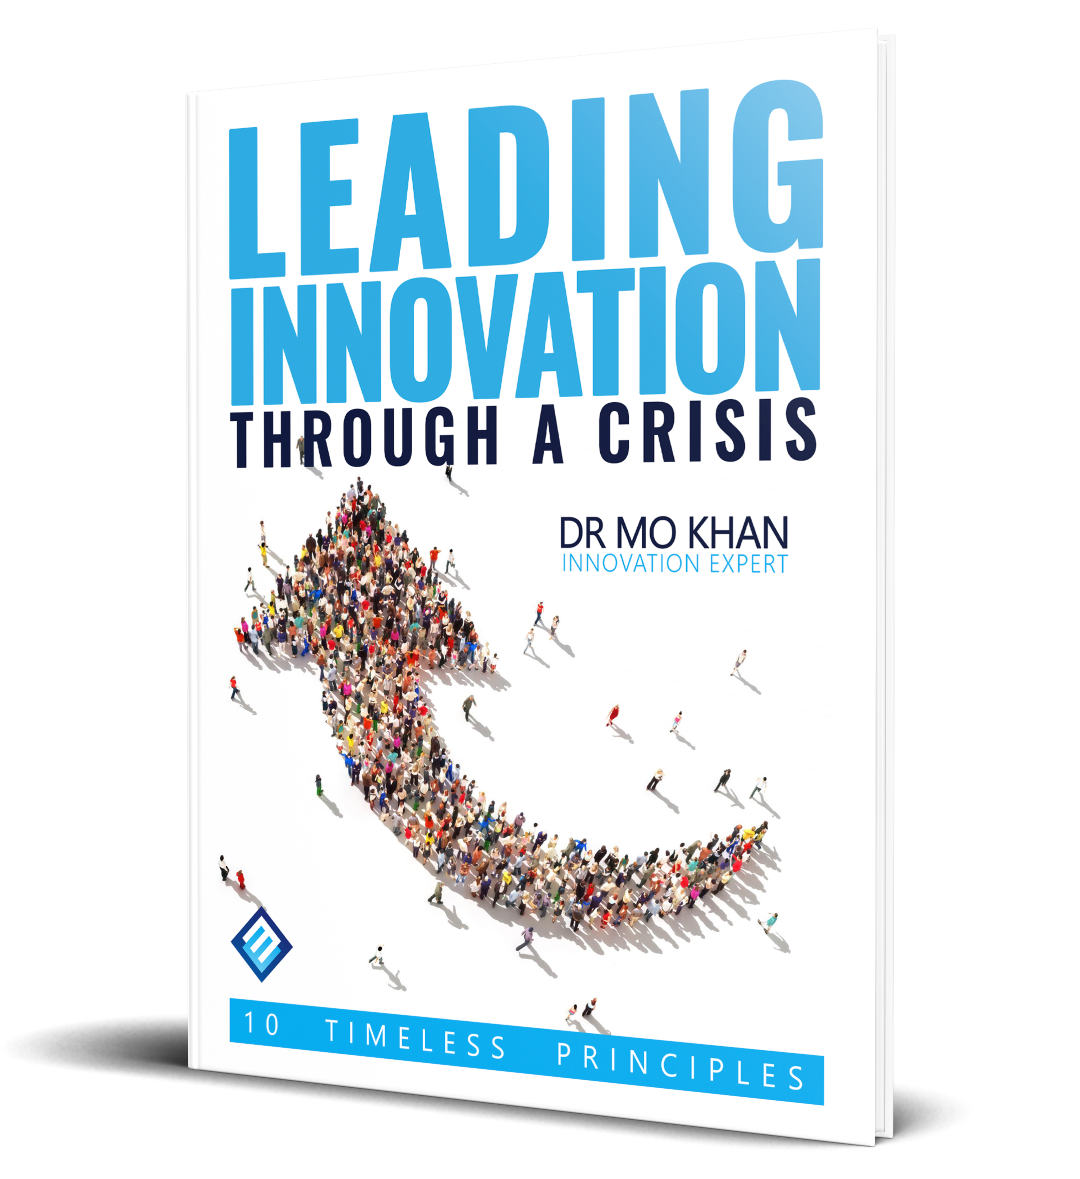 Leading Innovation Through a Crisis